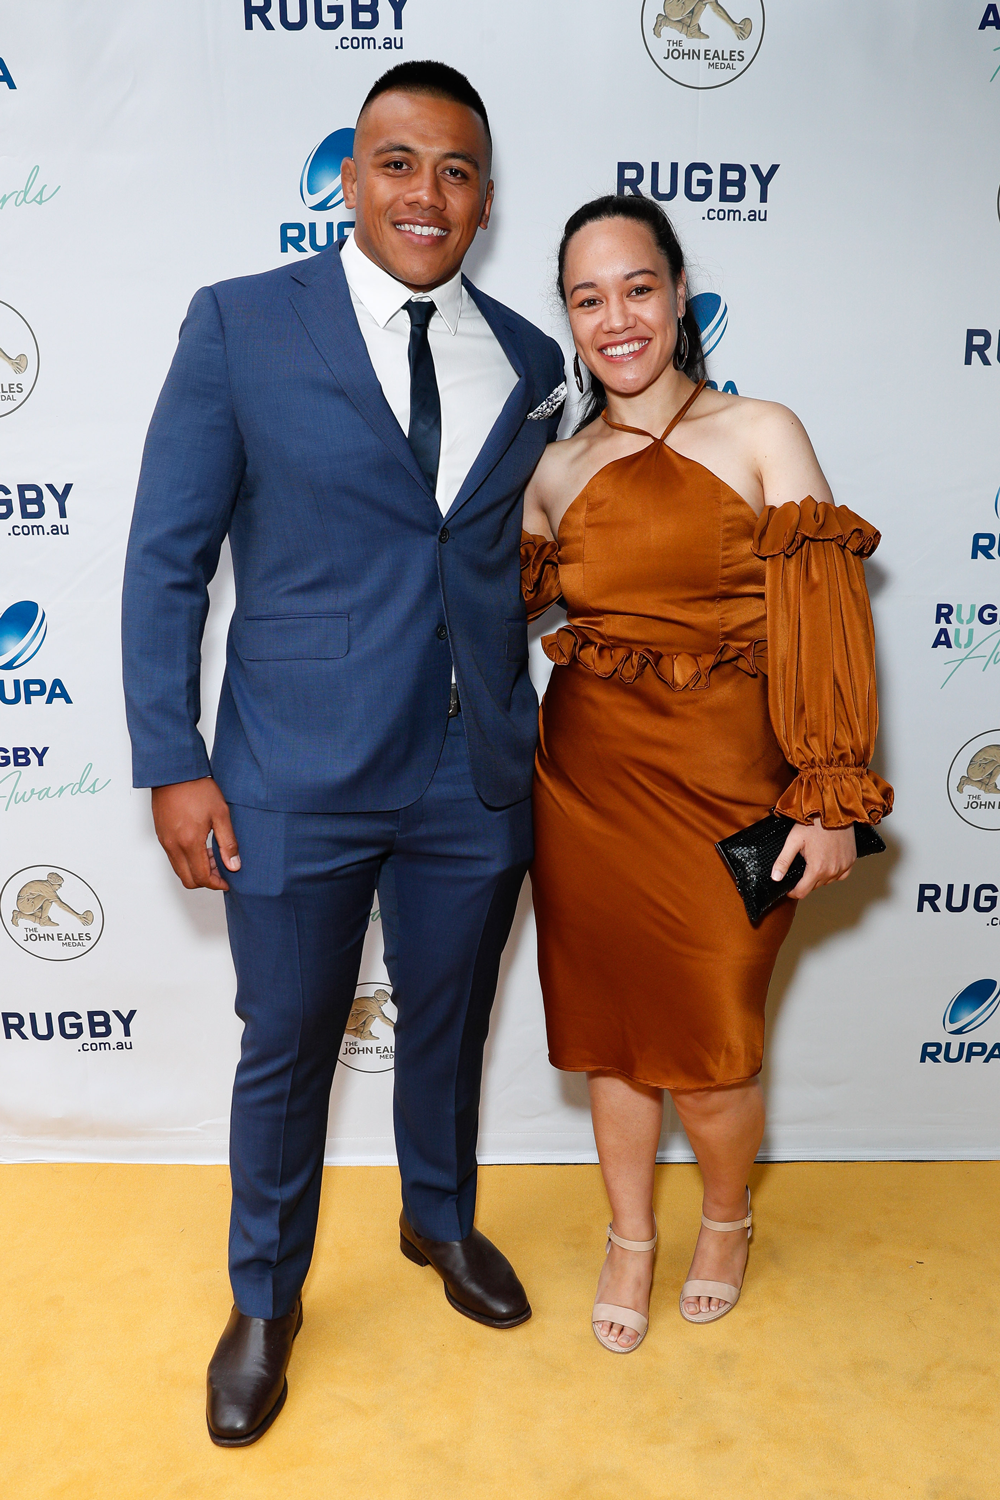 Allan Alaalatoa and his partner at the Rugby Australia Awards. Photo: Getty Images